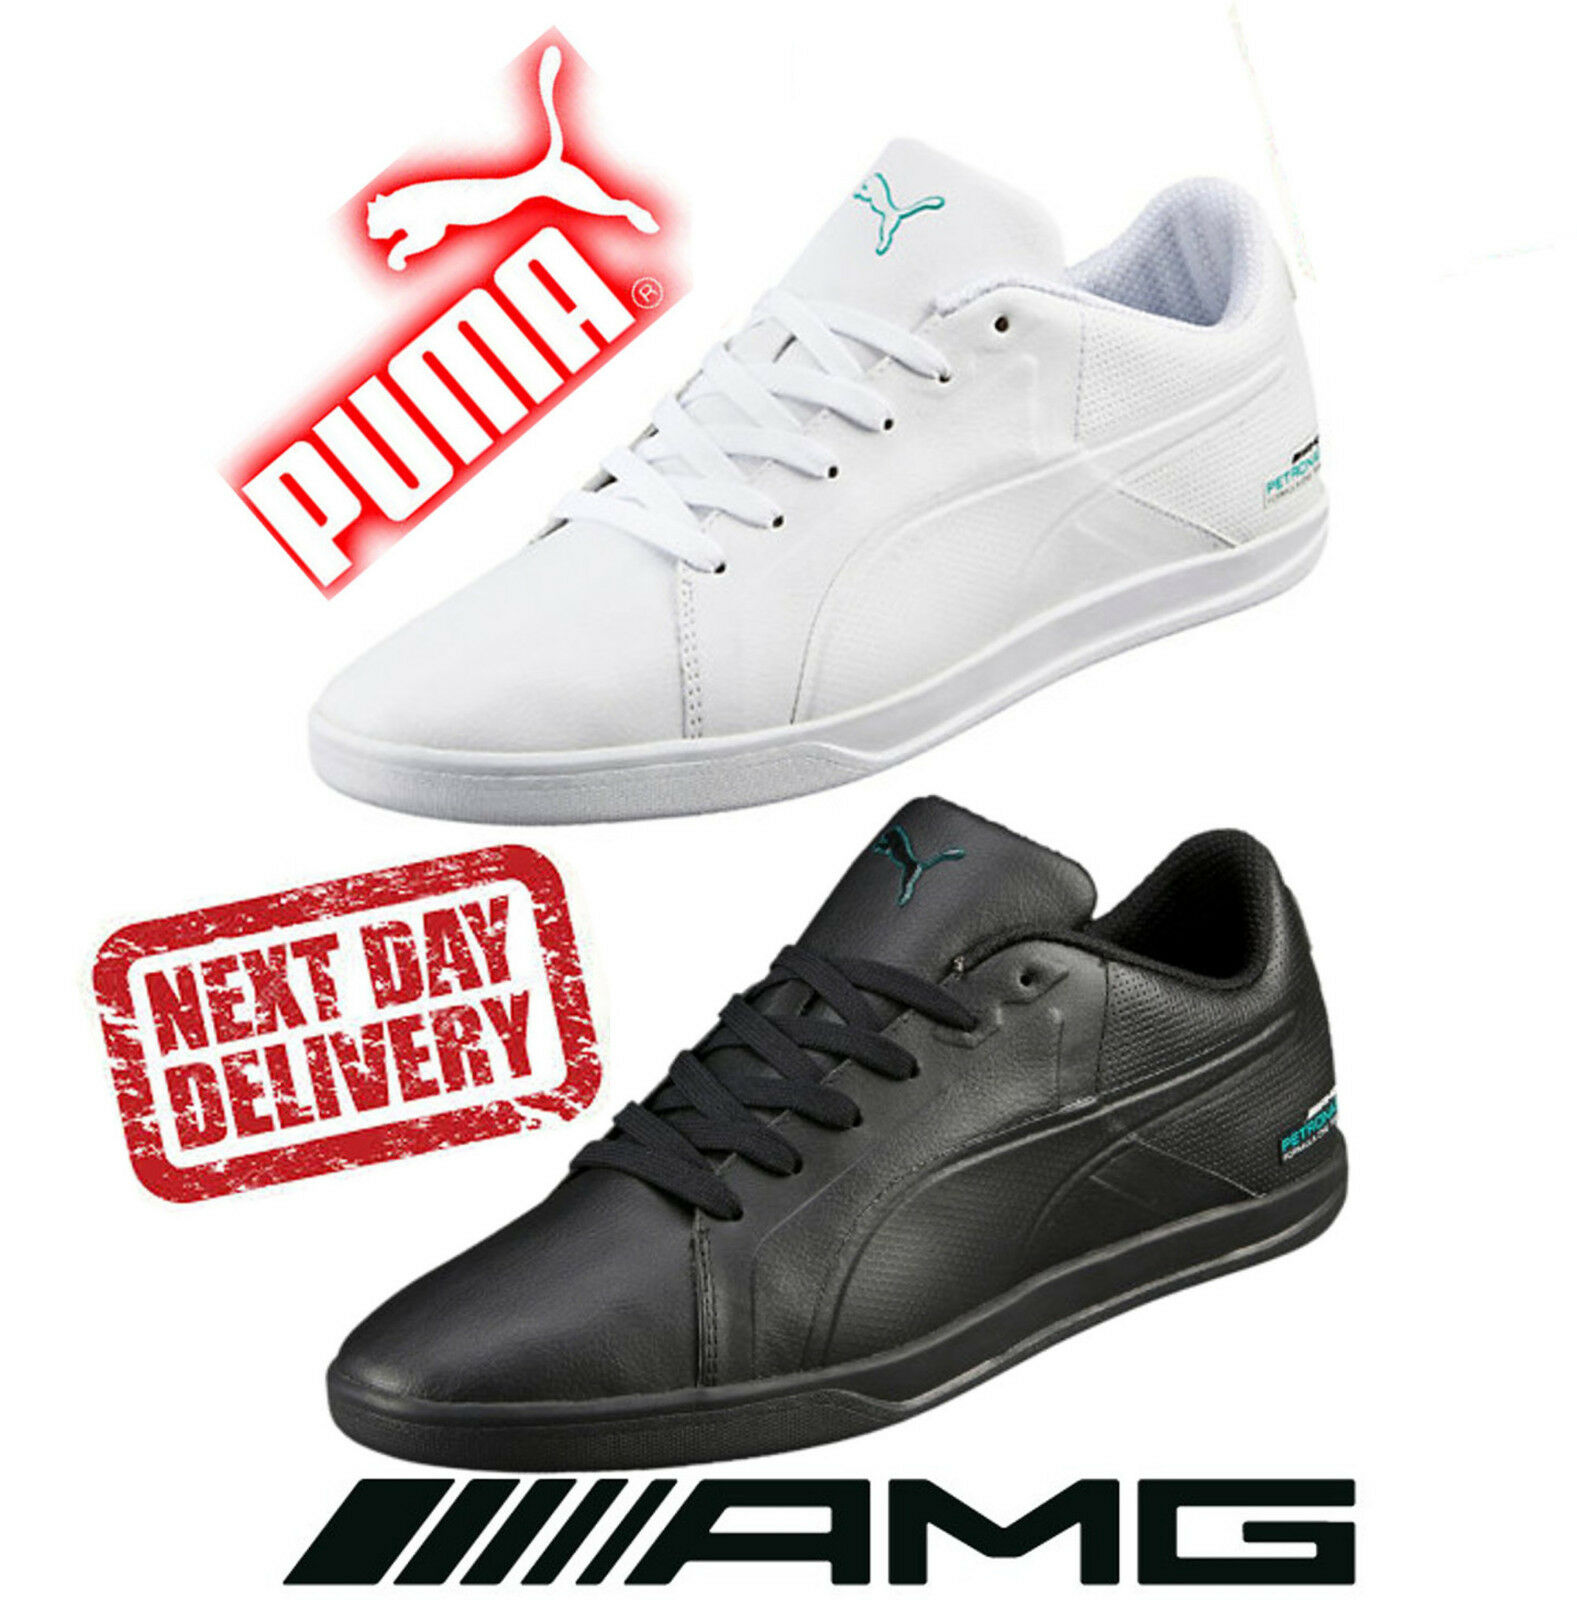 Cheap puma mercedes benz shoes free shipping for for Puma mercedes benz